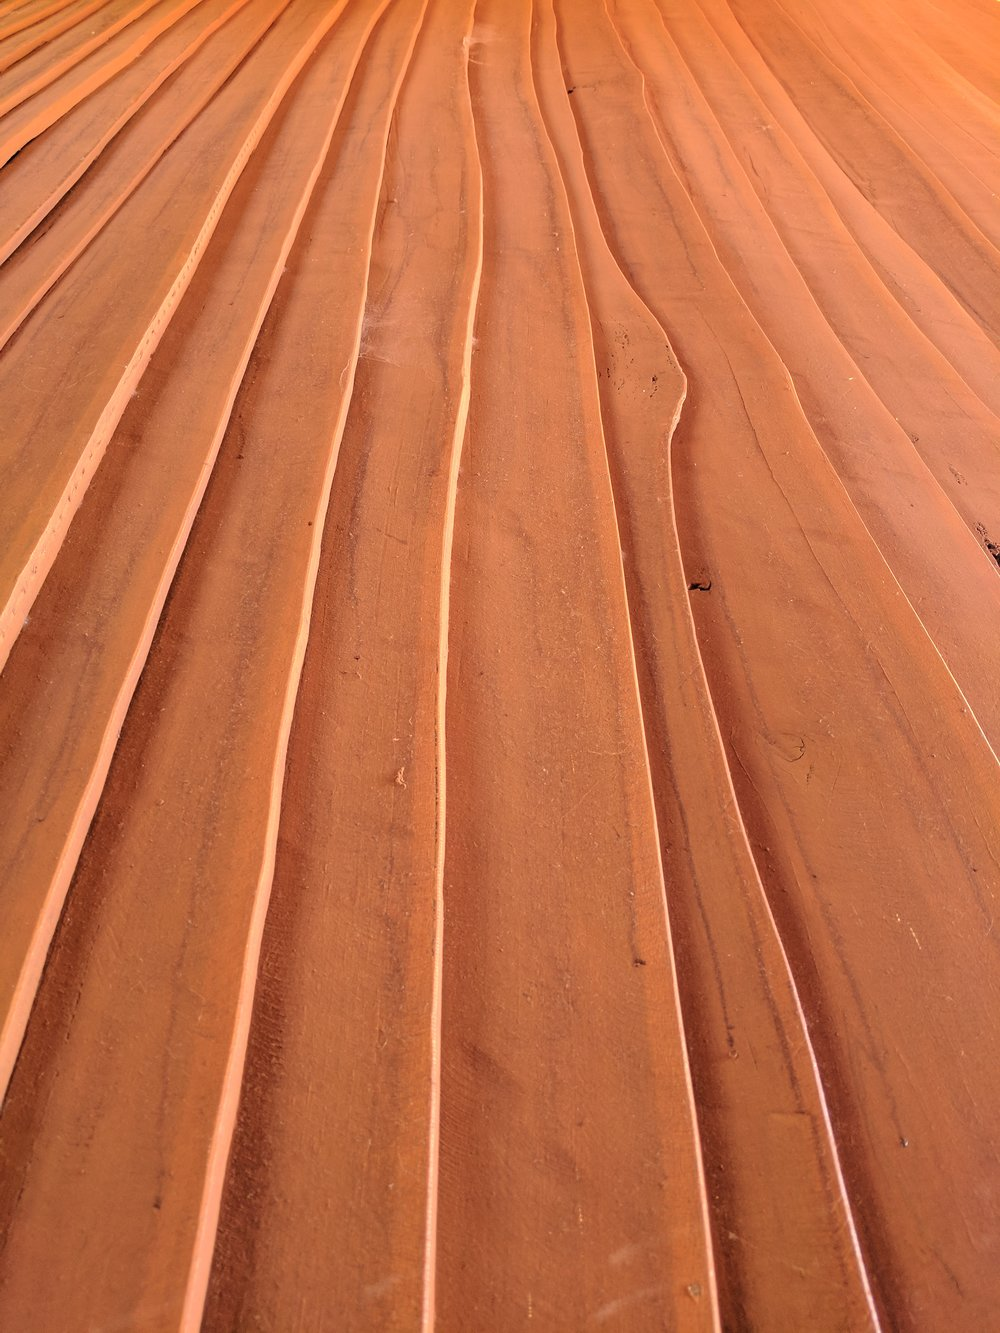 radially sawn cladding